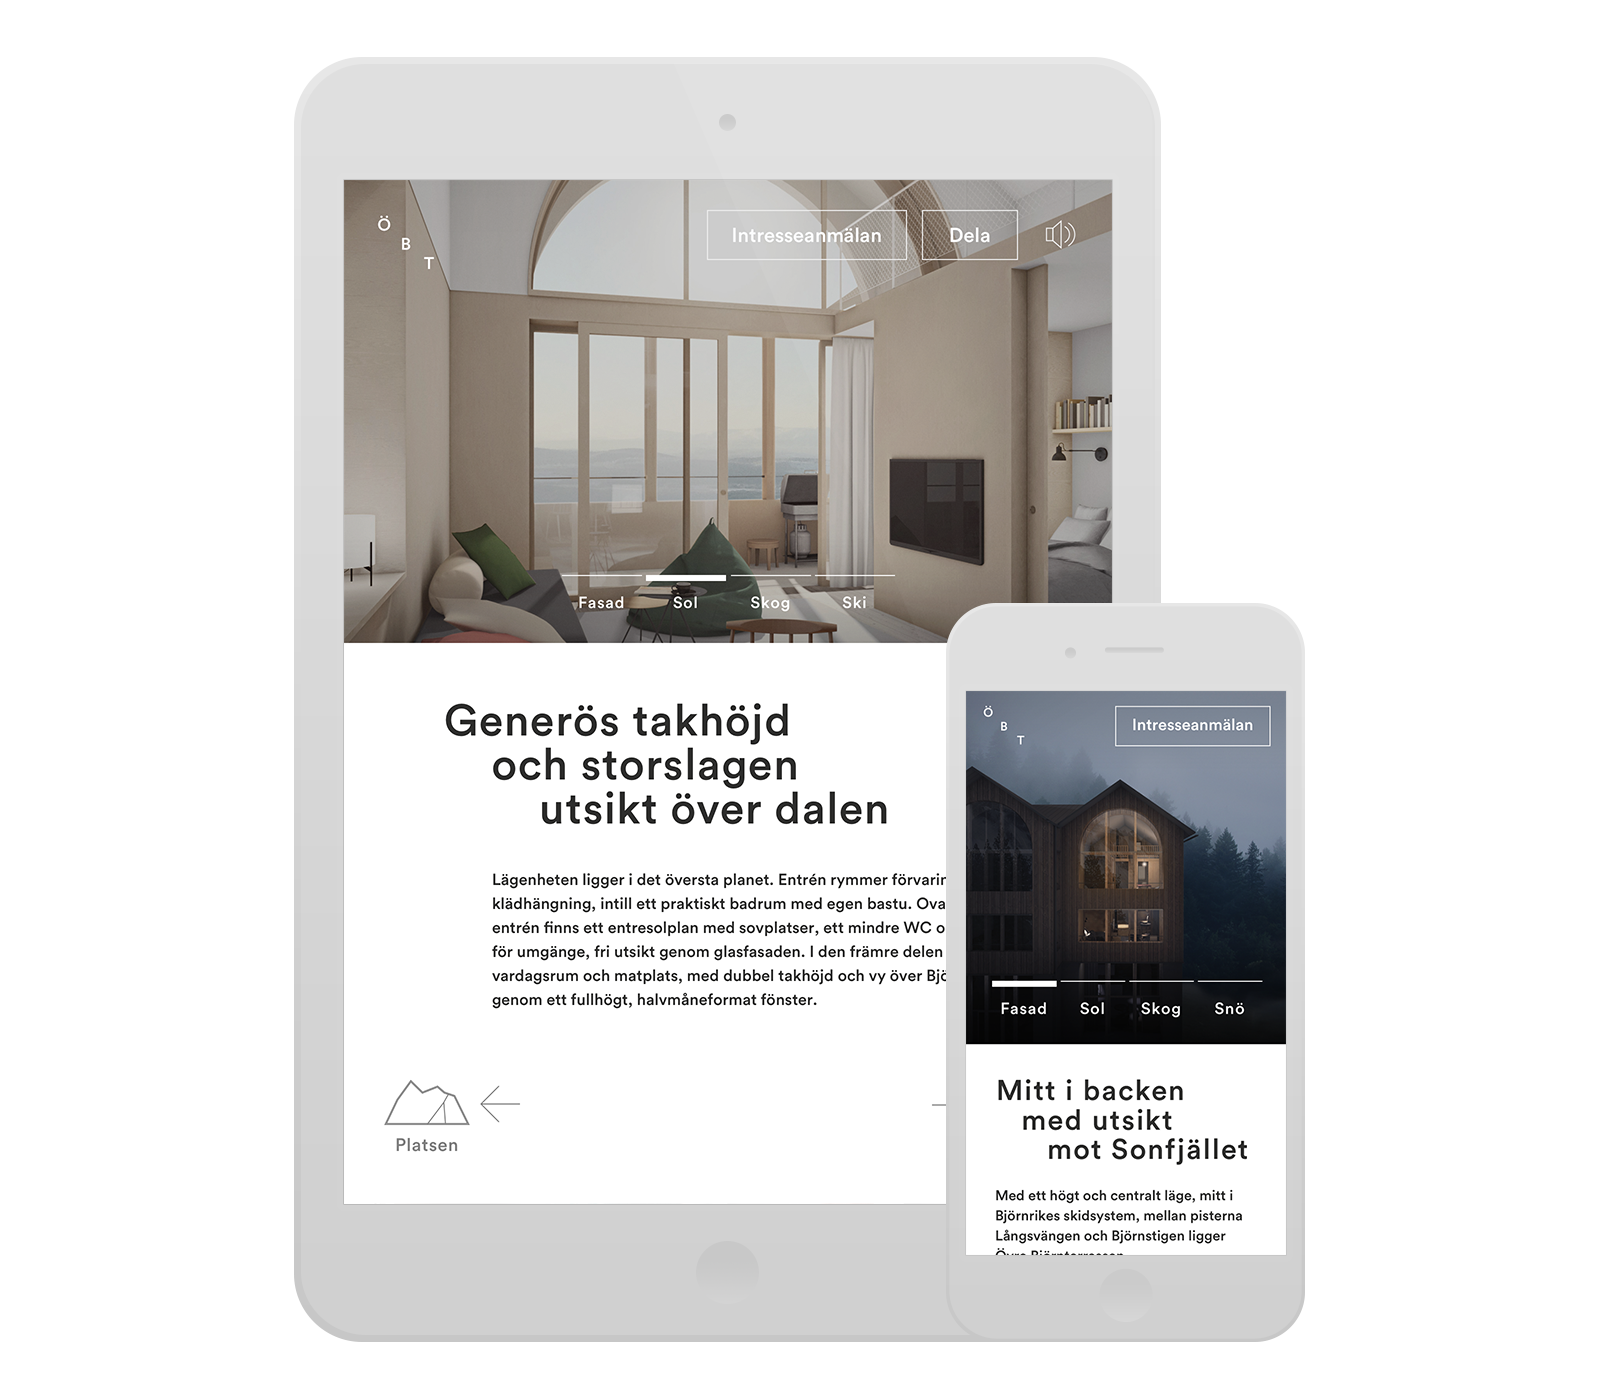 Digital design for Fahlander Architects and Övre Björnterrassen. Material from the process. The web site mounted in tablet and smartphone.